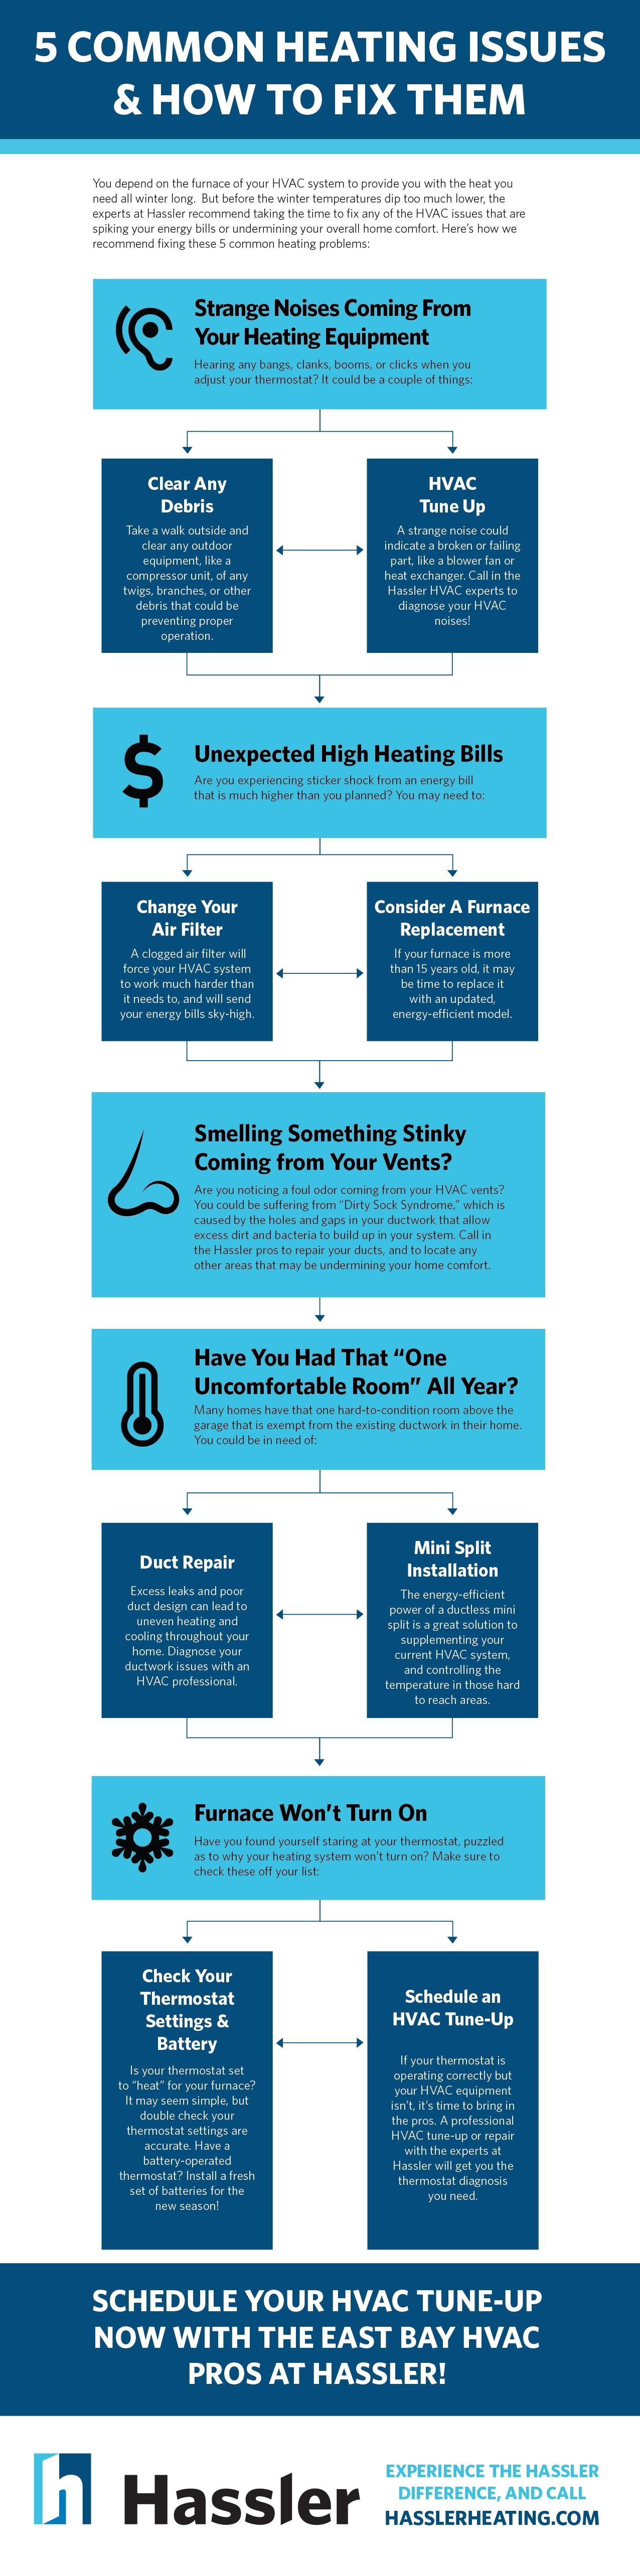 5 Common Heating Issues infographic